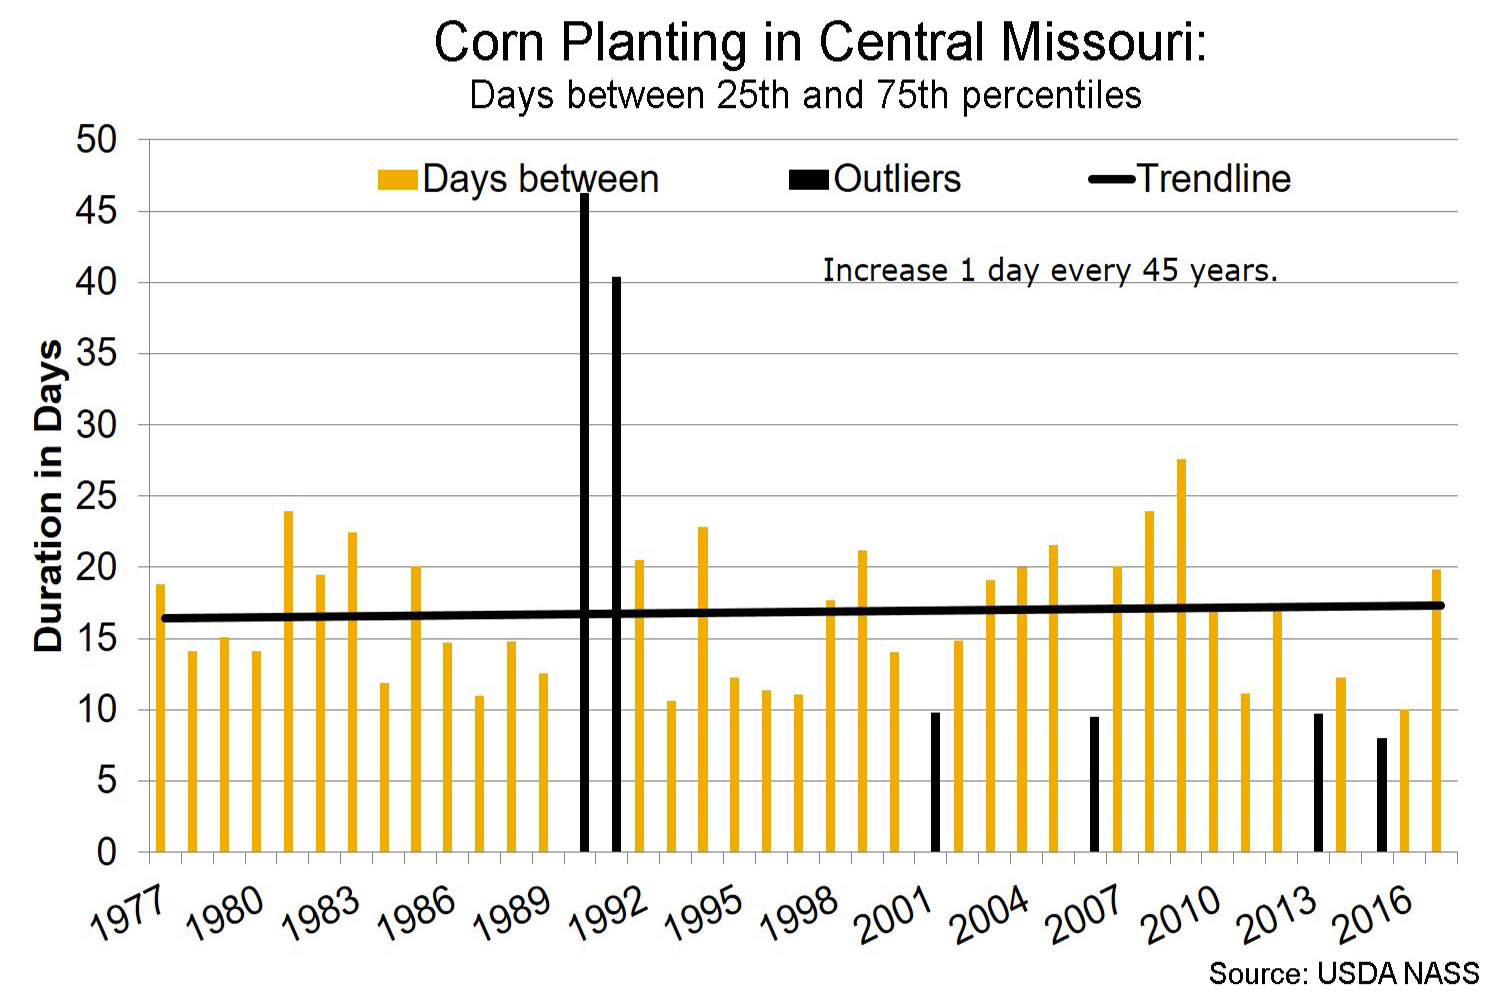 Corn planting in central Missouri days between 25th and 75th percentiles chart